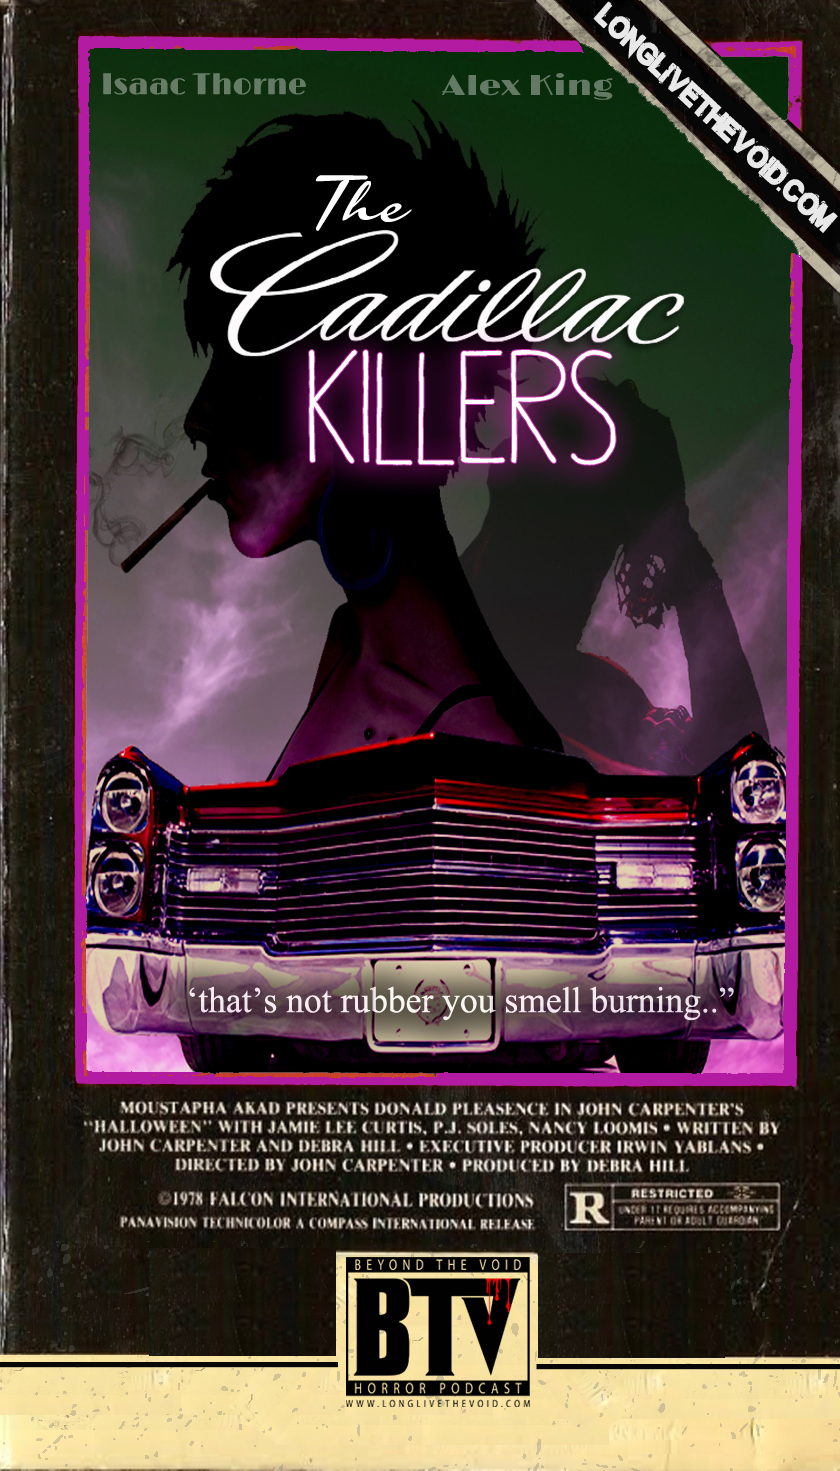 VHS cover made by Alex King. Looking for someone to help you with some photoshop?